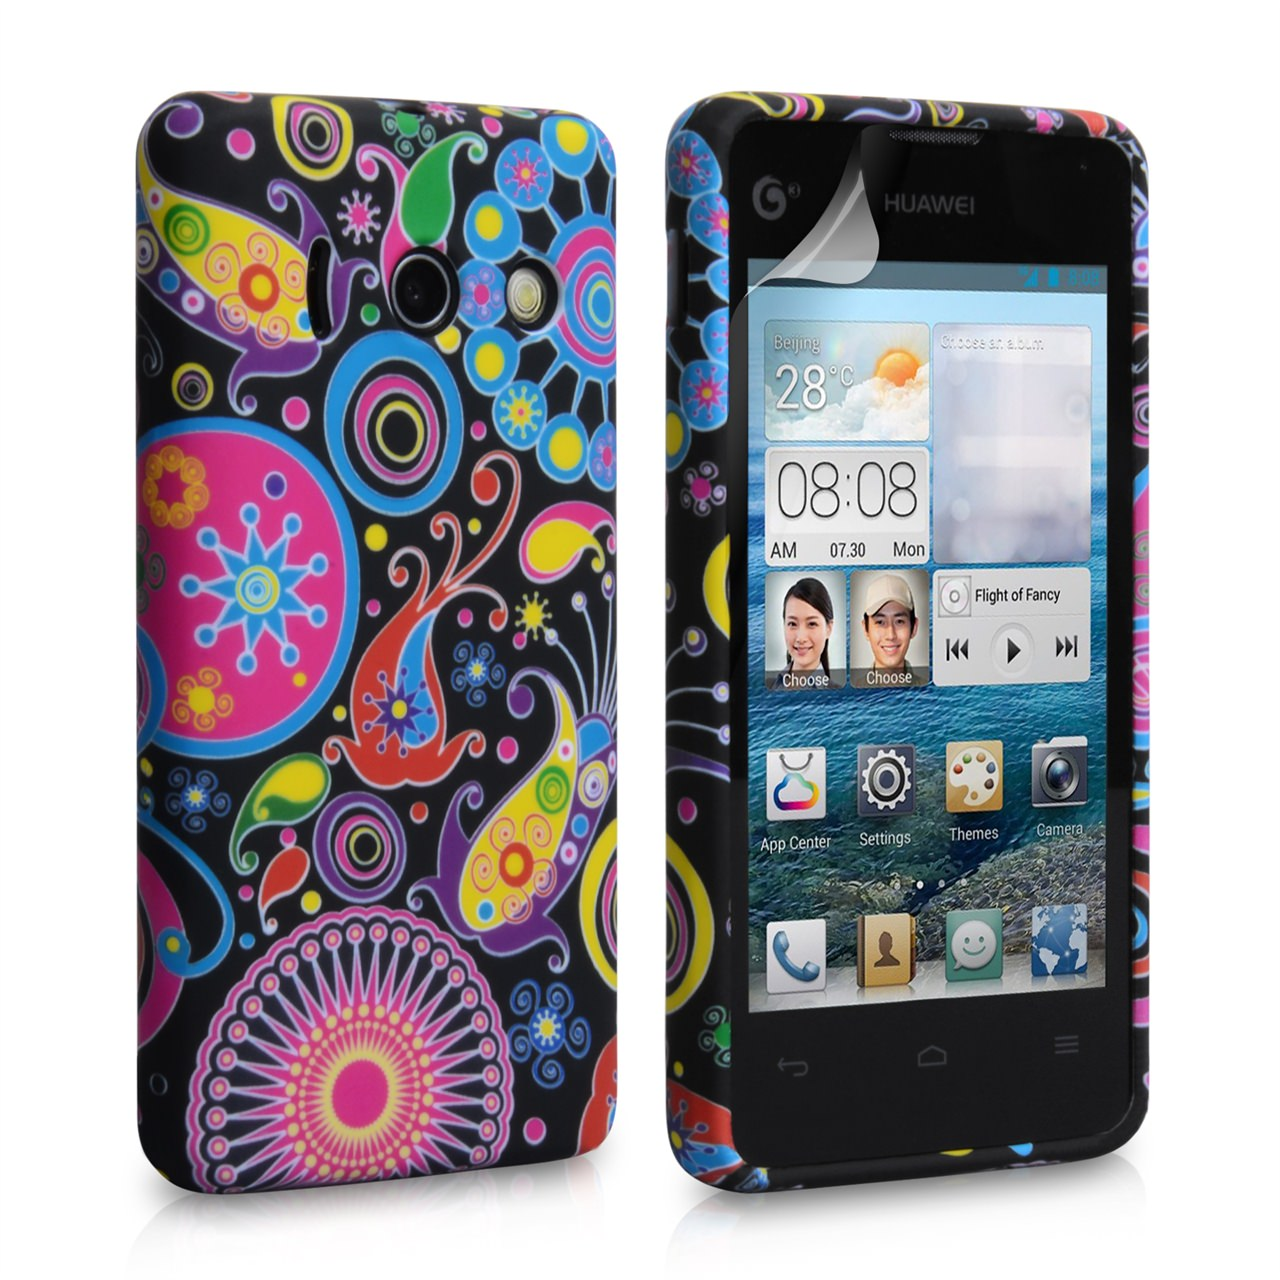 YouSave Accessories Huawei Ascend Y300 Jellyfish Silicone Gel Case